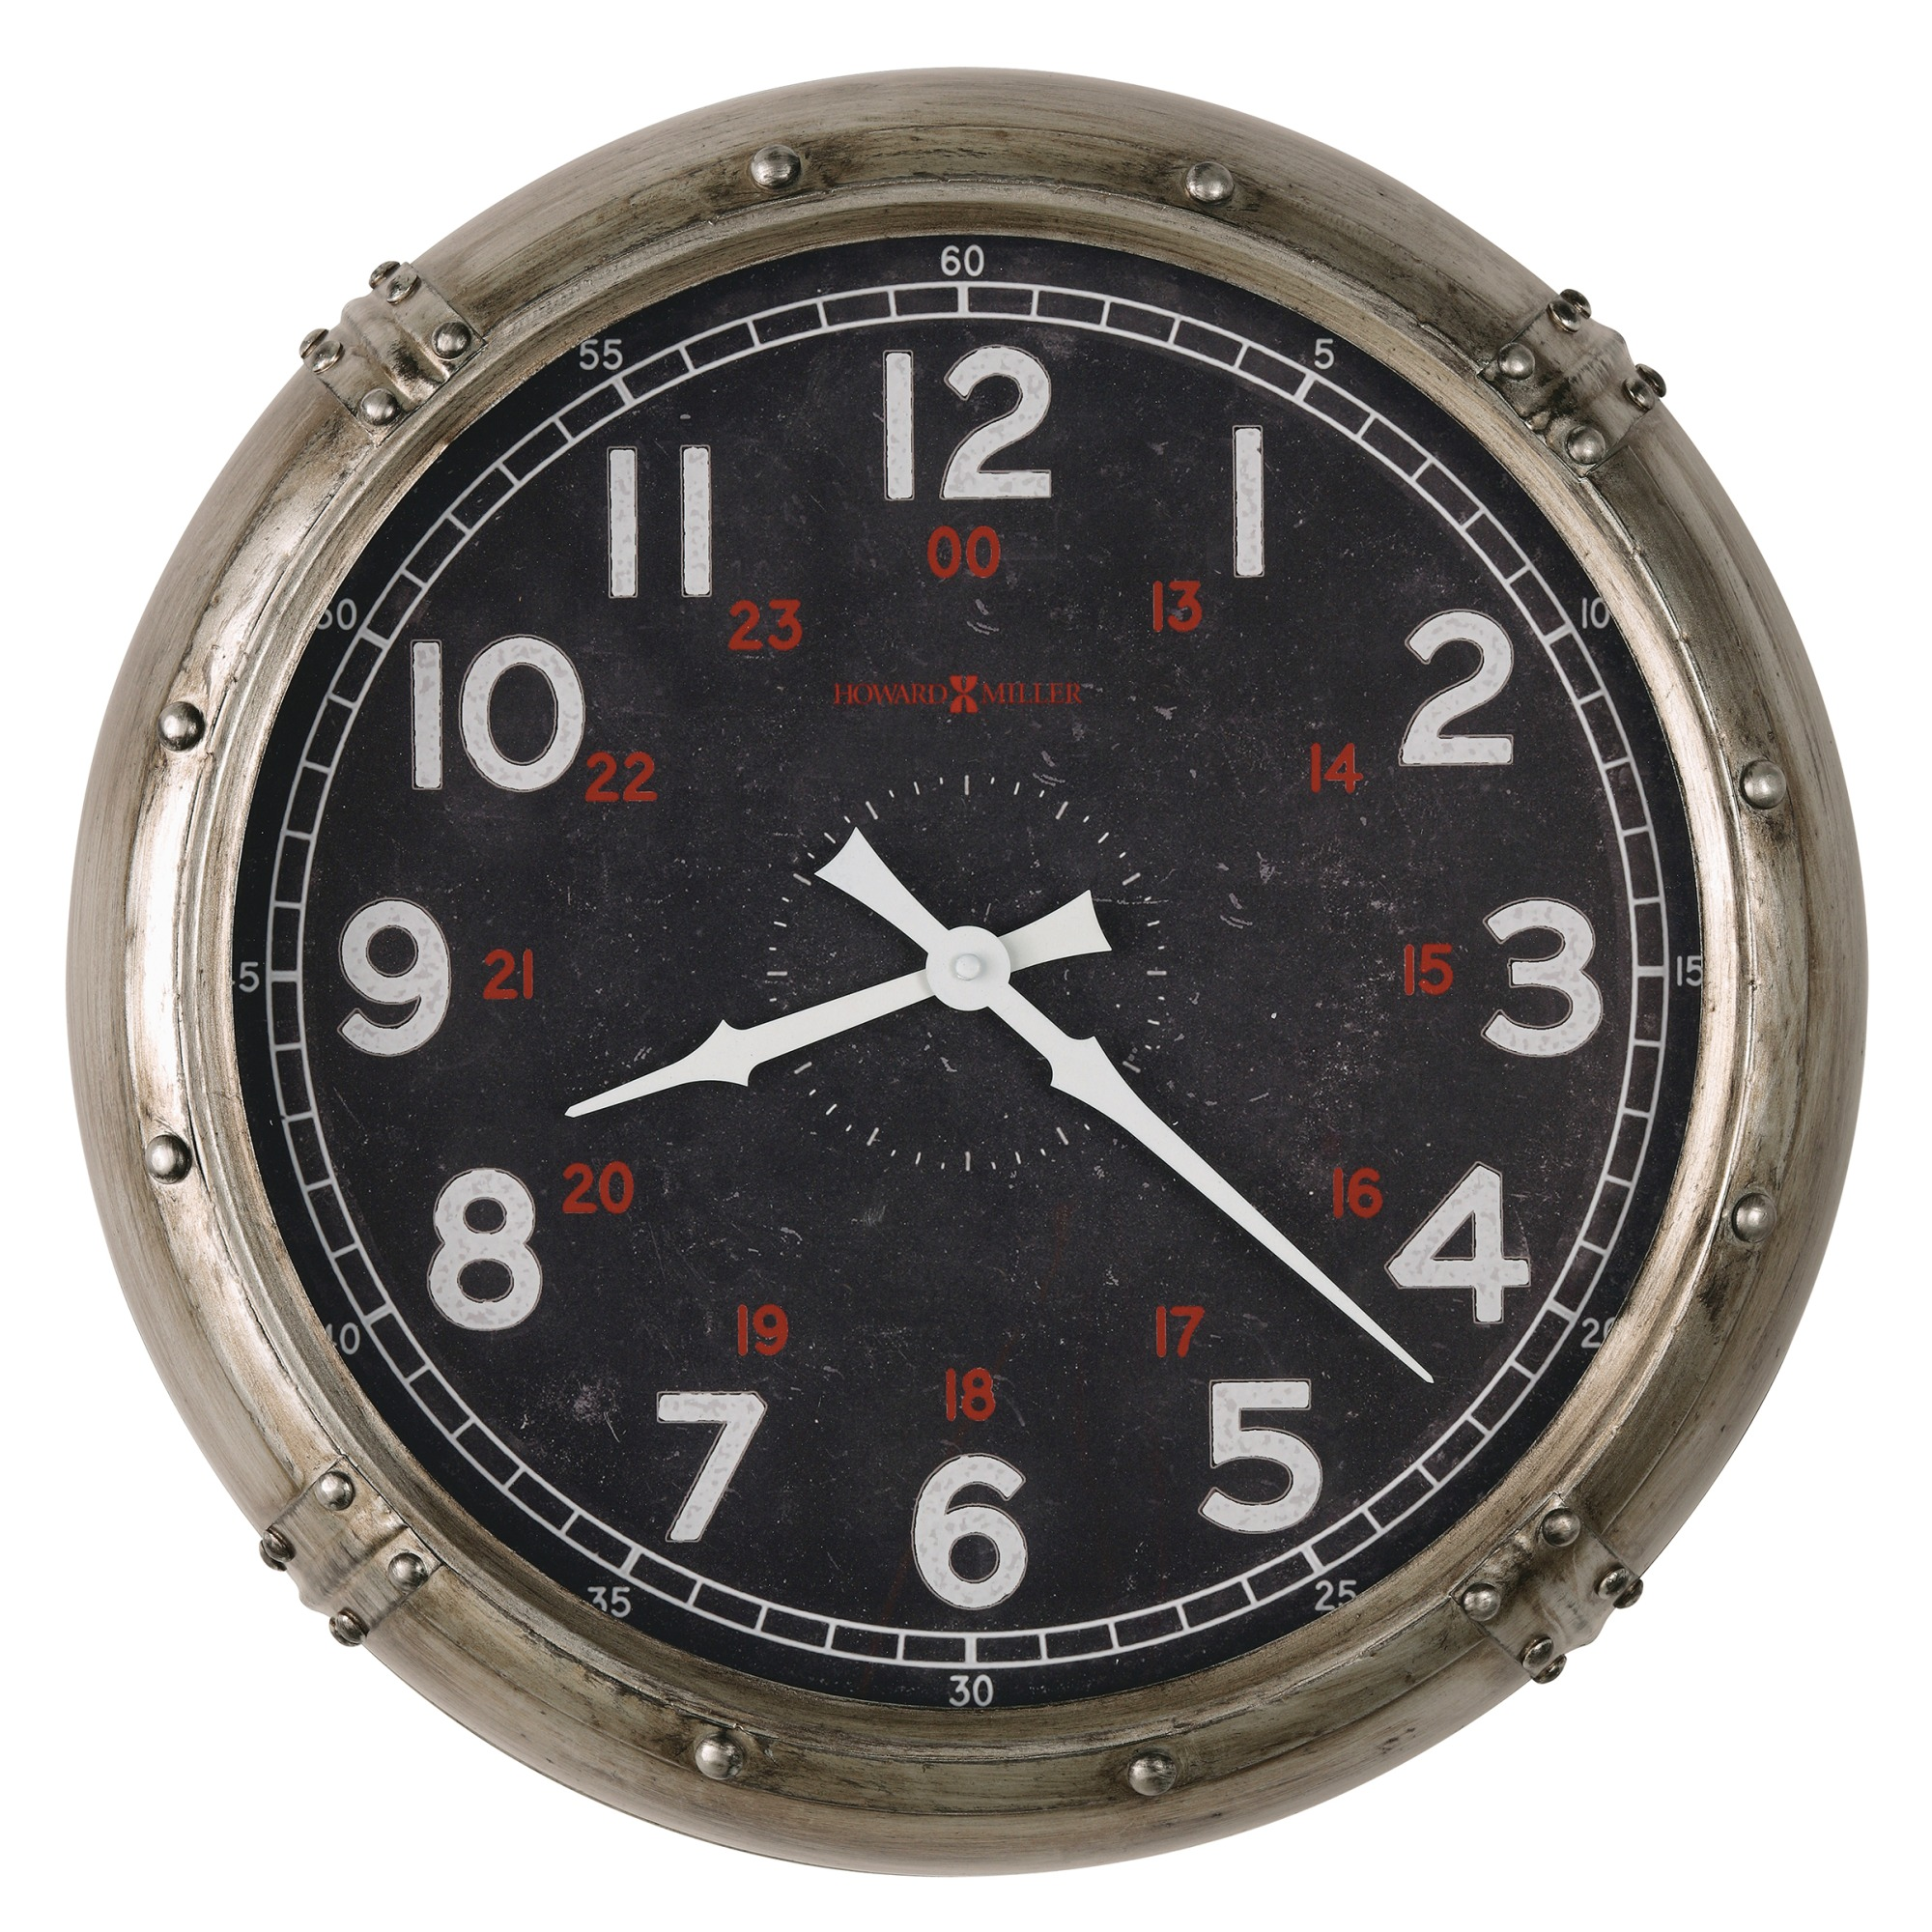 Image for 625-717 Riggs Gallery Wall Clock from Howard Miller Official Website